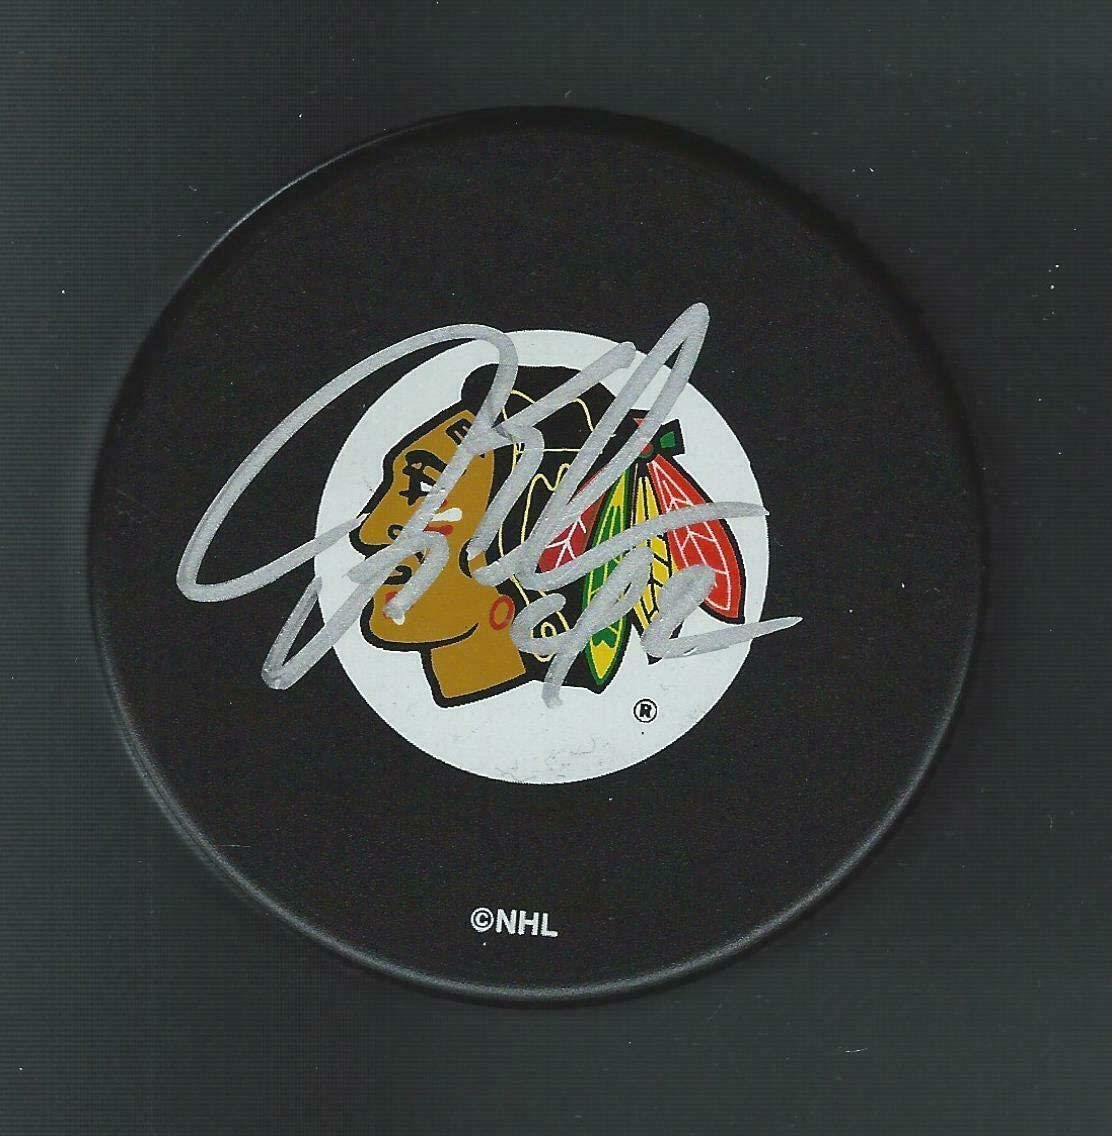 Jon Klemm Signed Hockey Puck - Autographed NHL Pucks